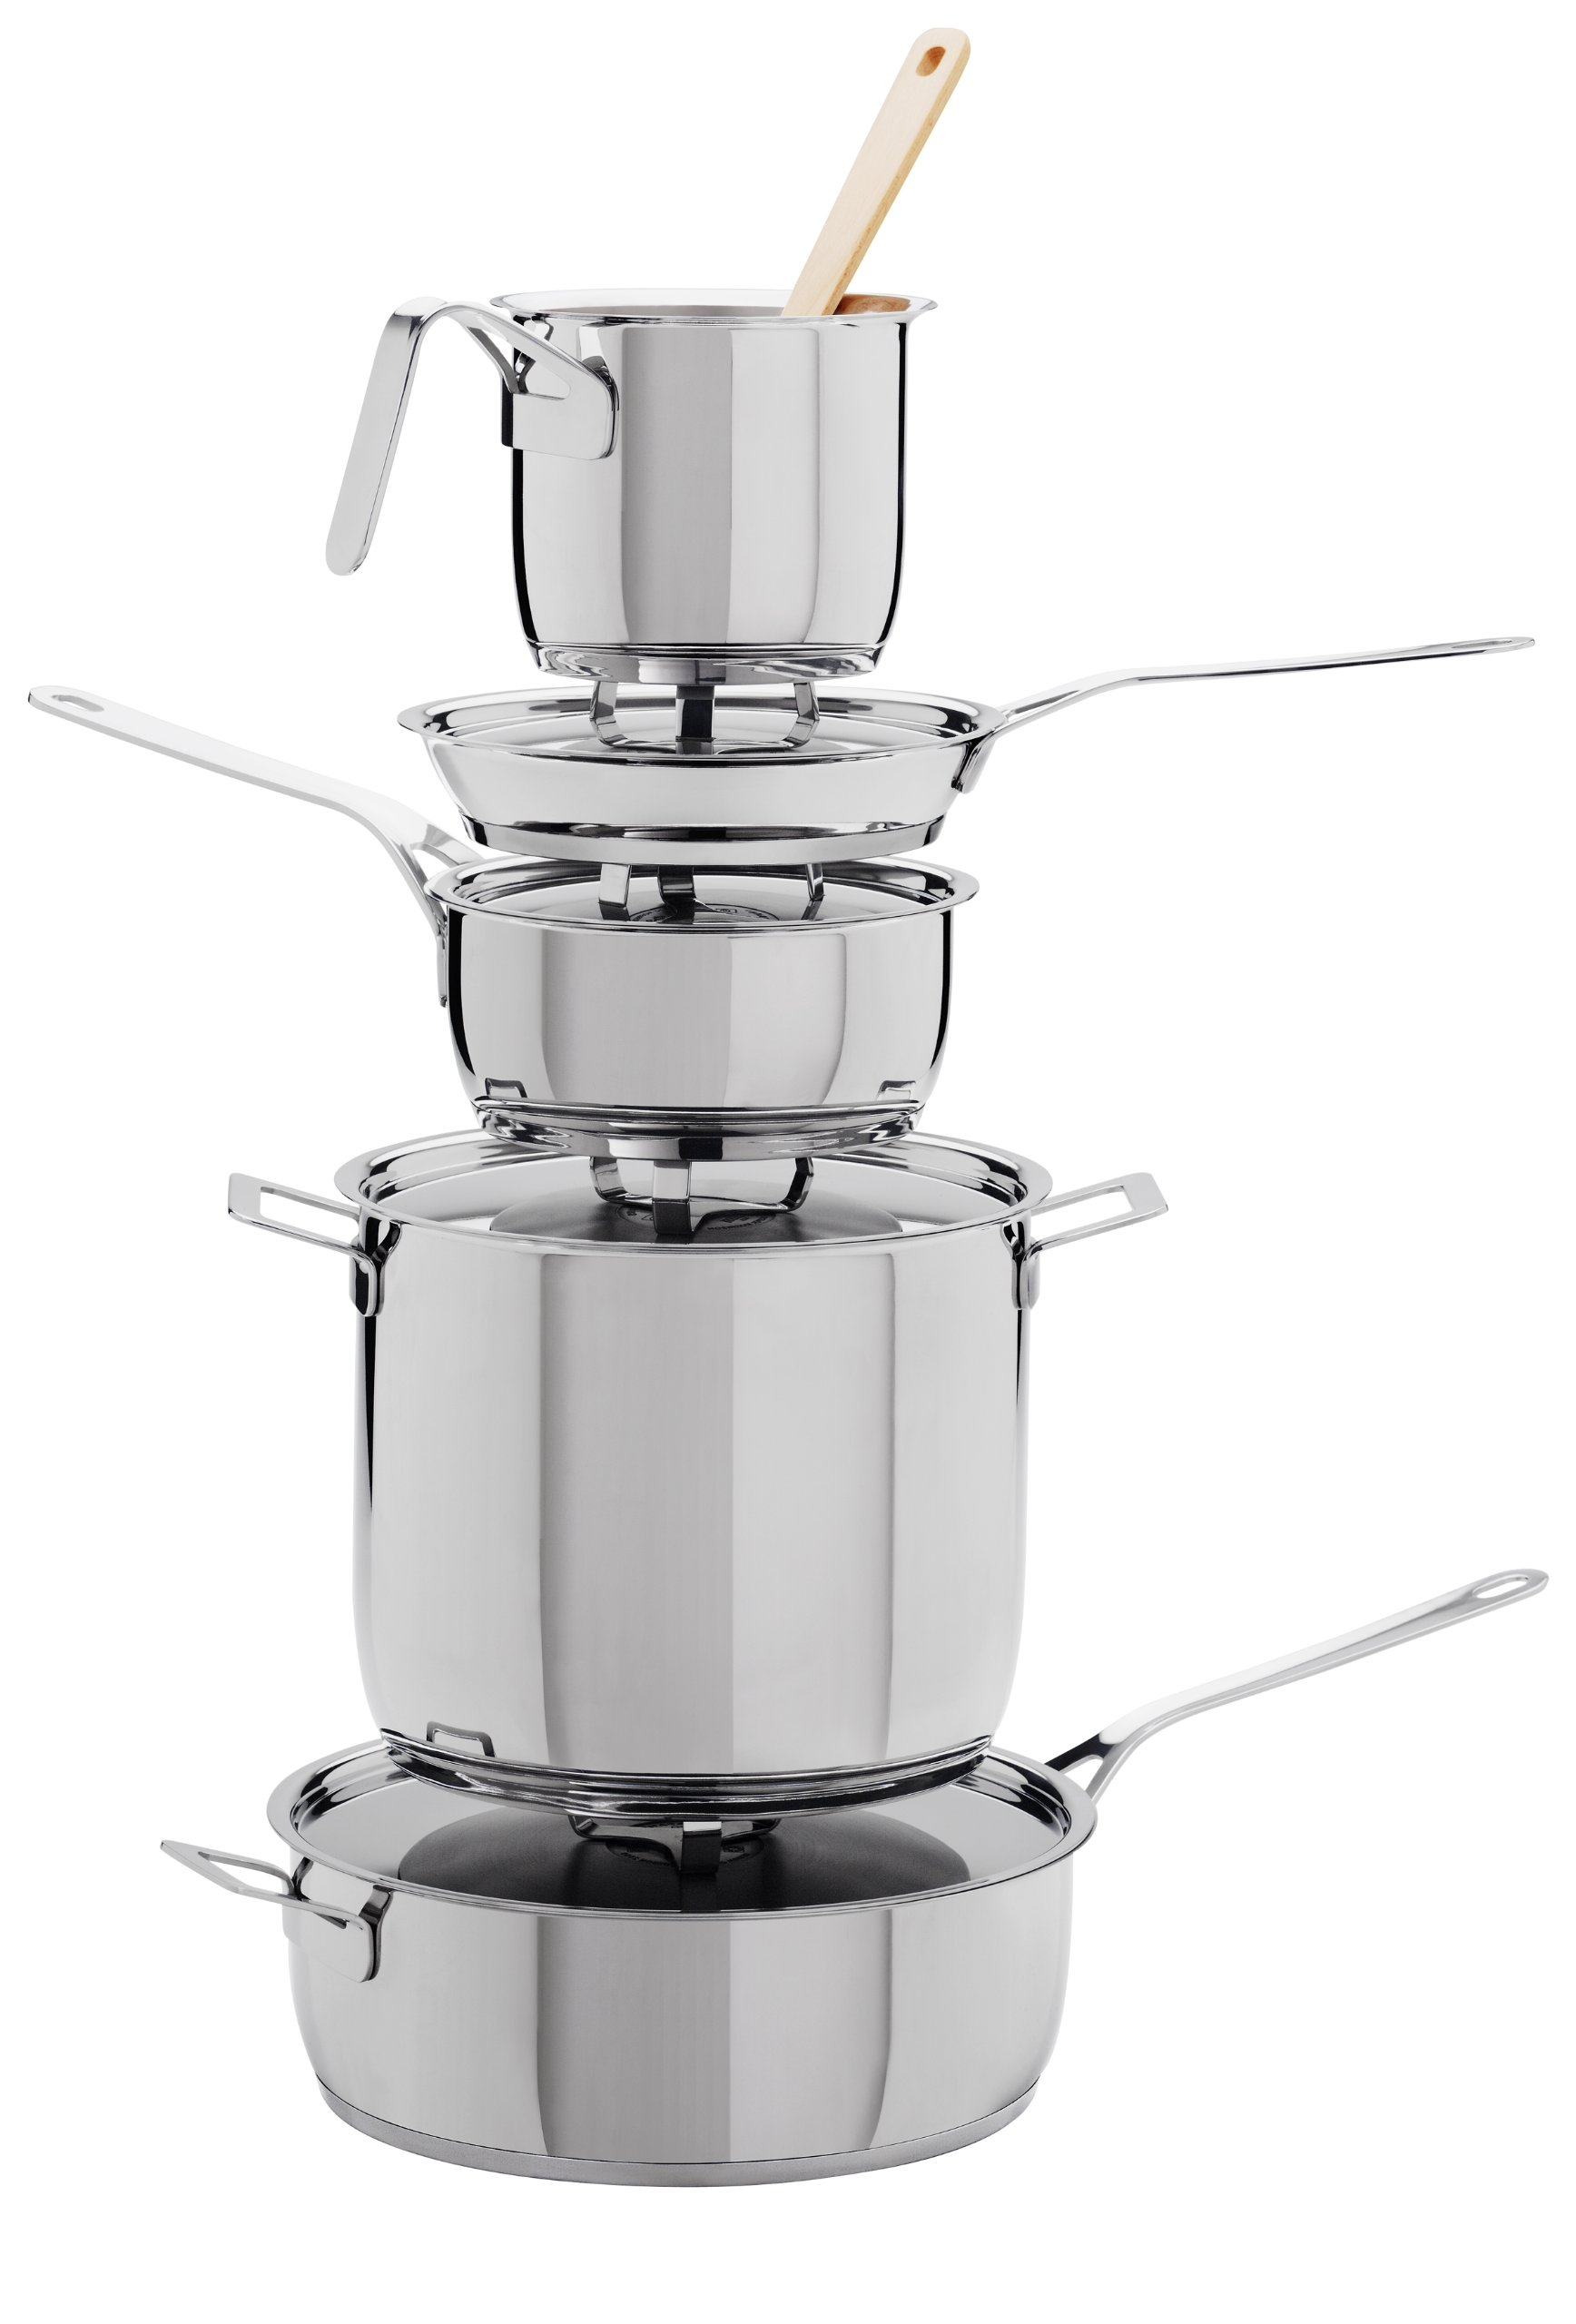 A Di Alessi,AJM302''POTS & PANS'', Milk boiler in 18/10 stainless steel mirror polished,2 qt ¼ oz